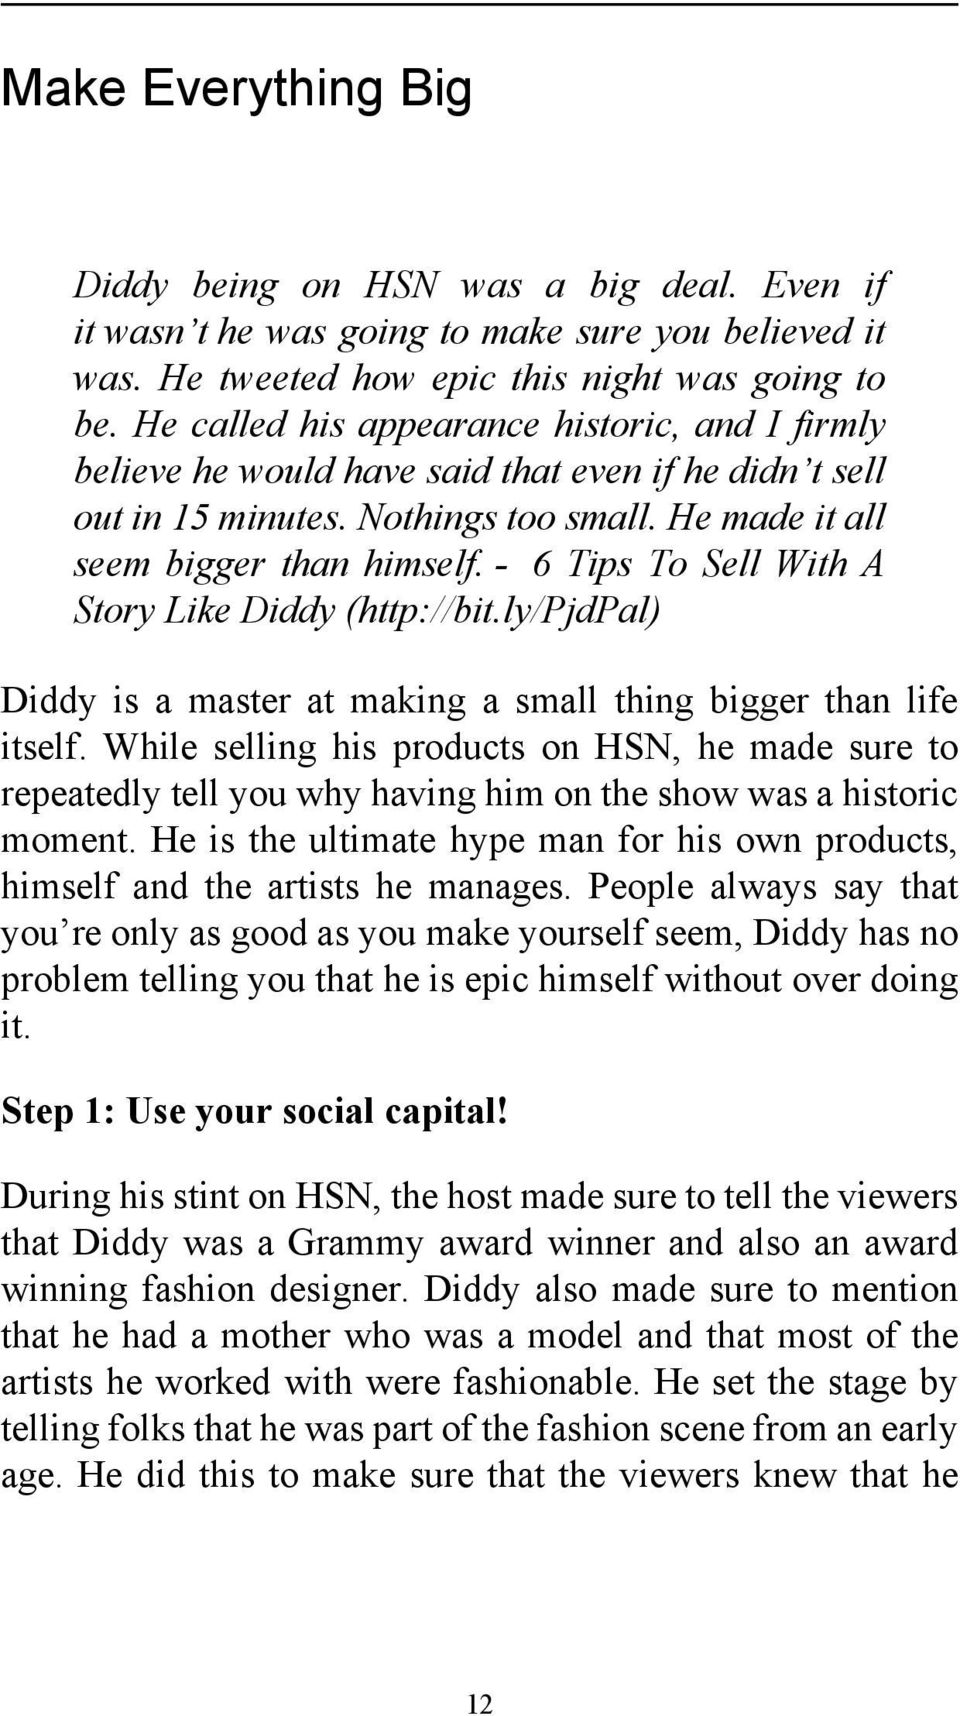 - 6 Tips To Sell With A Story Like Diddy (http://bit.ly/pjdpal) Diddy is a master at making a small thing bigger than life itself.